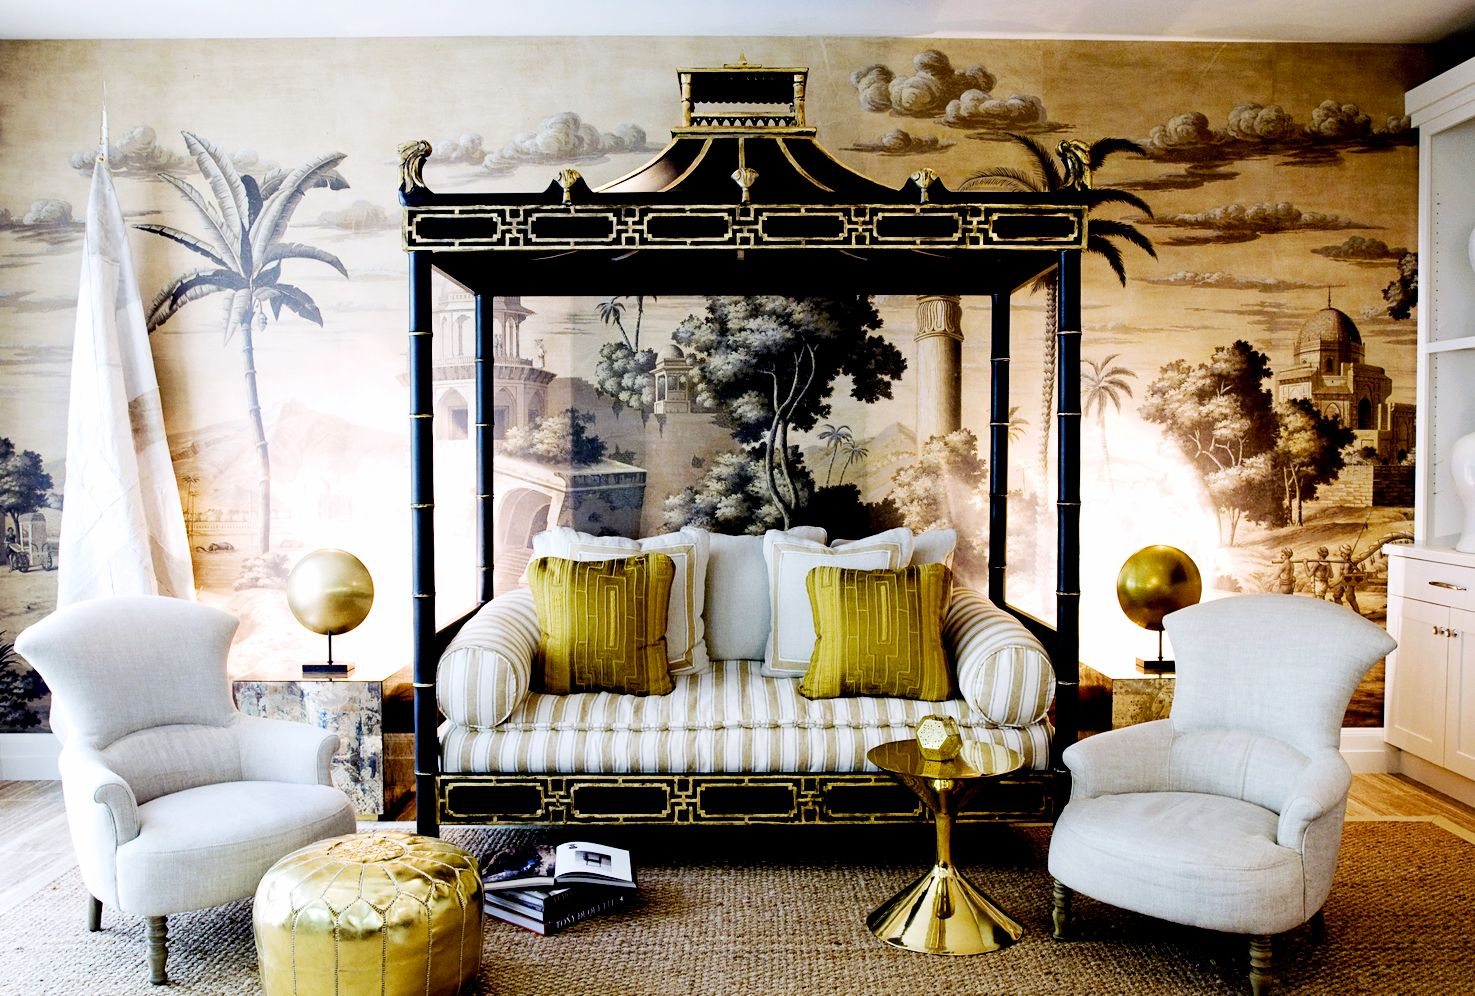 14 Wallpaper Moments That Made Us Melt Decor Chinoiserie Asian